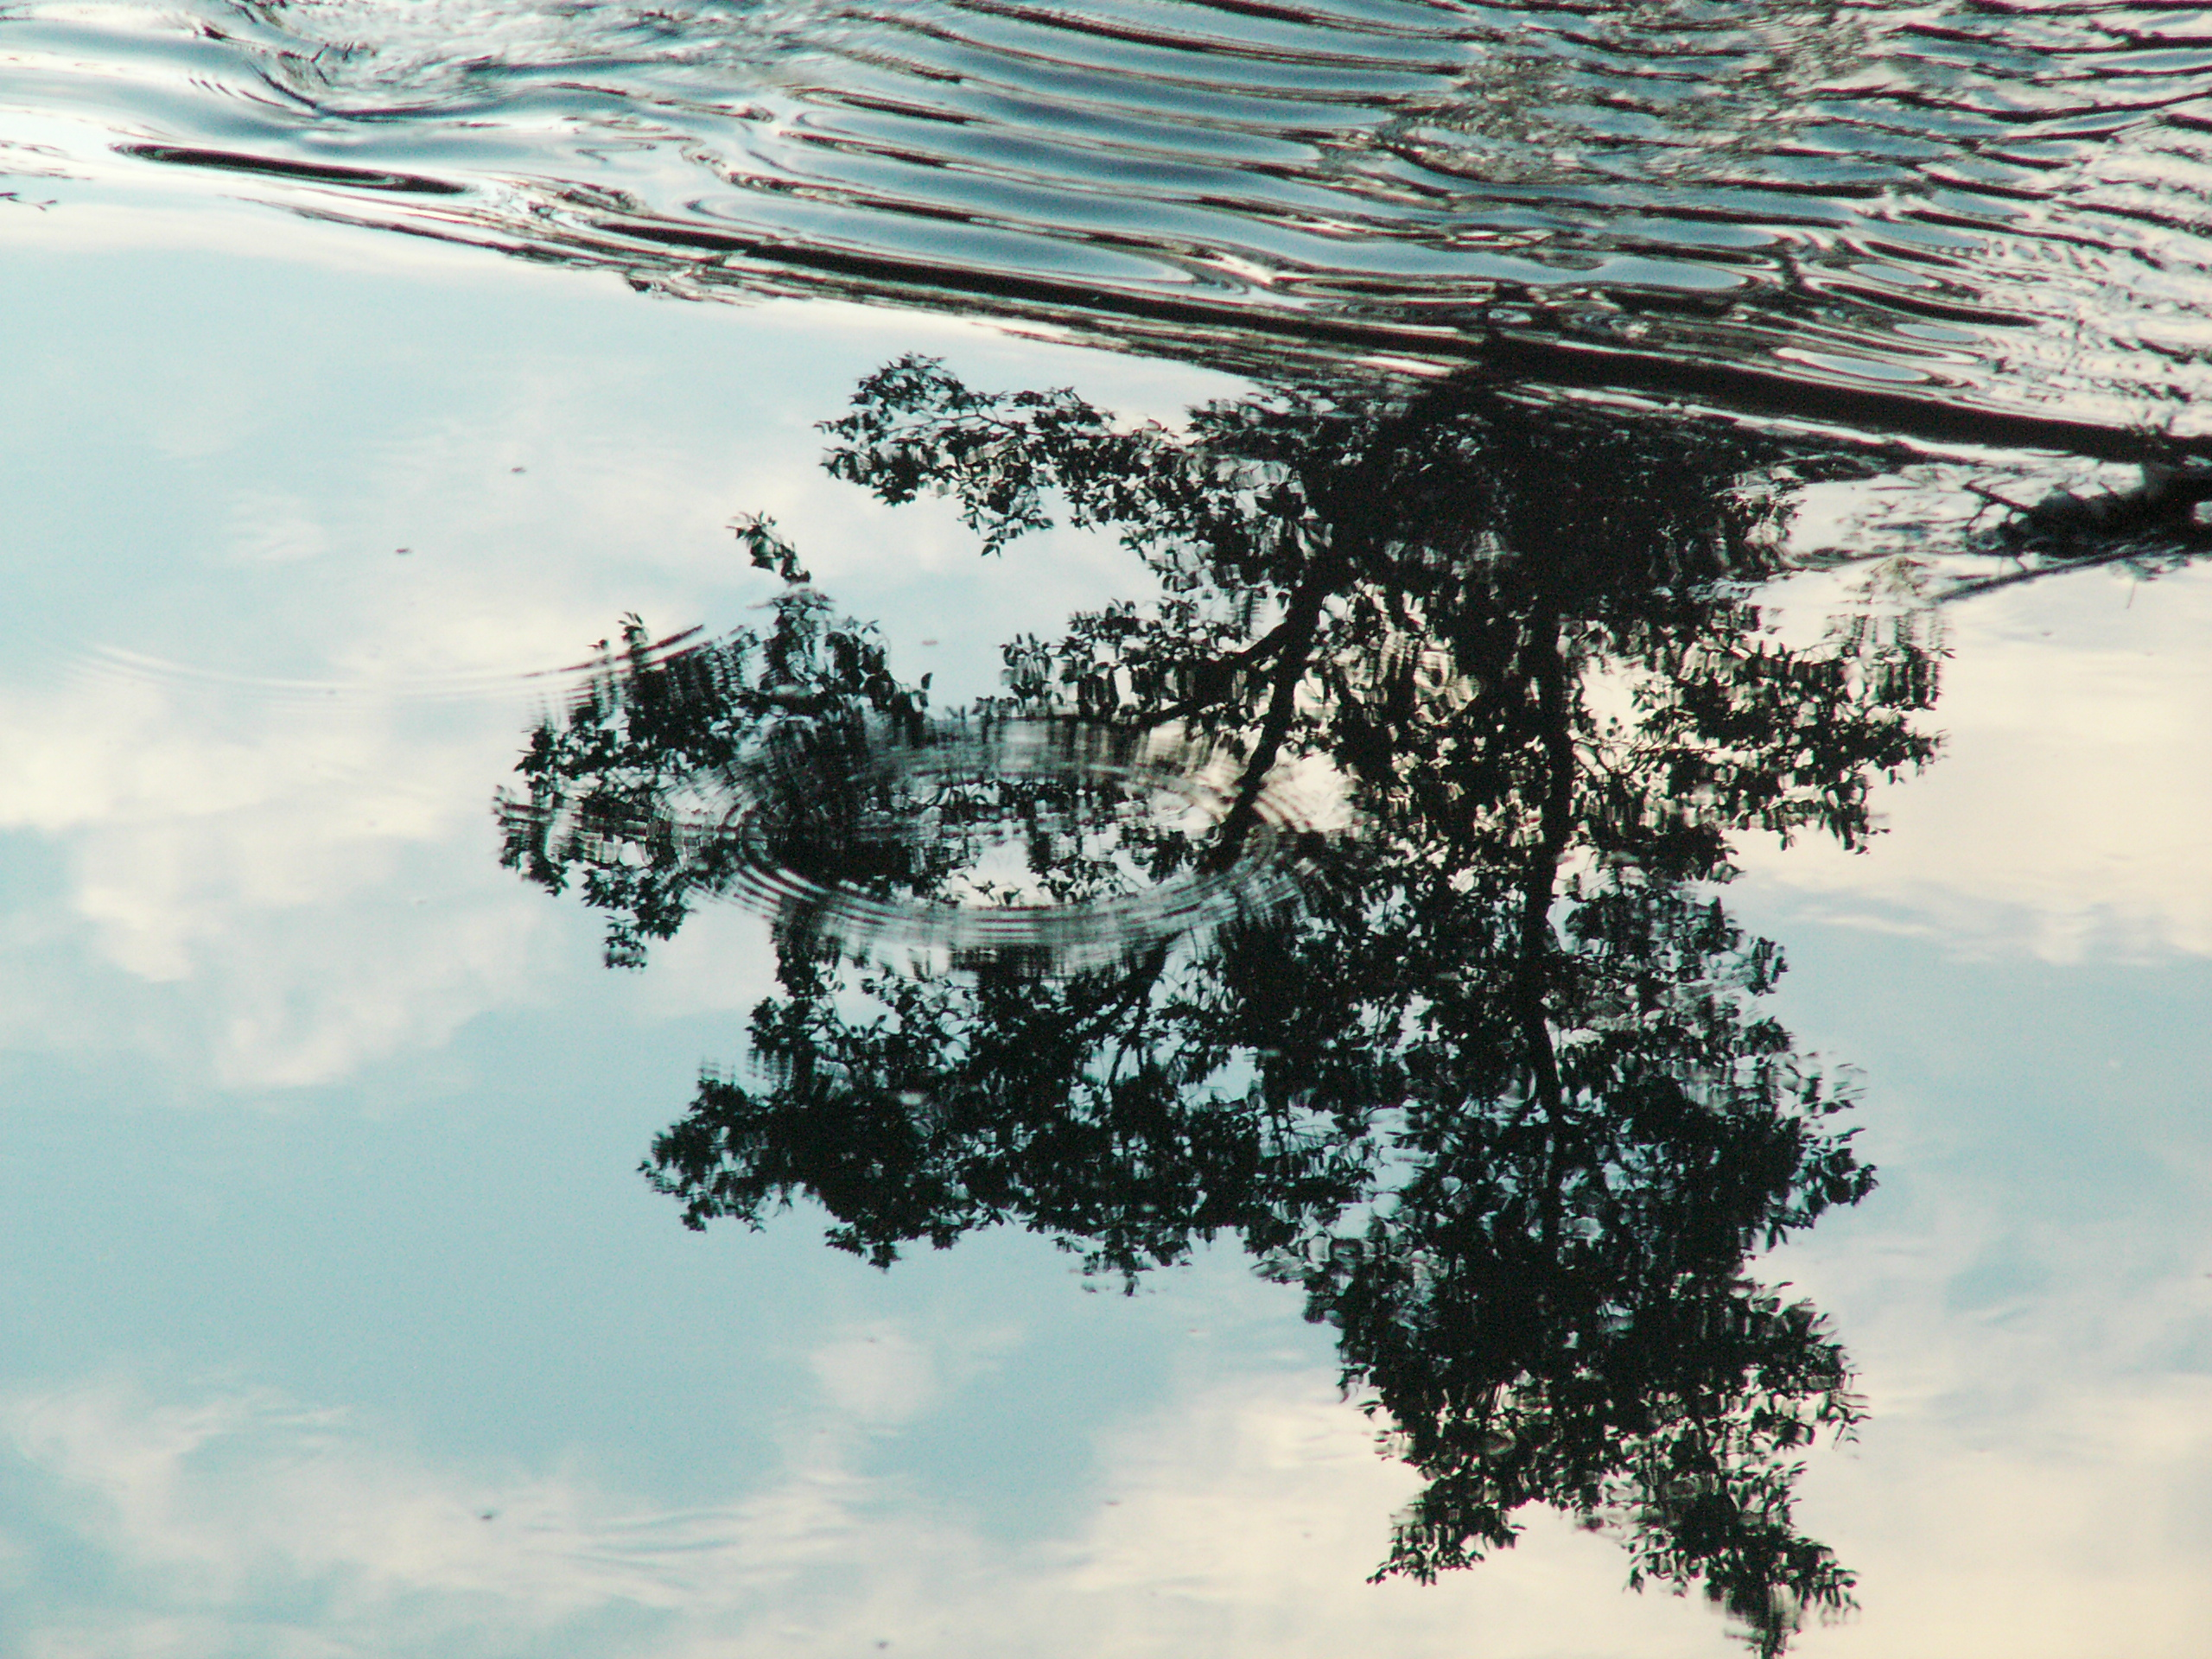 Water, Surface, Tree, Wet, Sky, HQ Photo